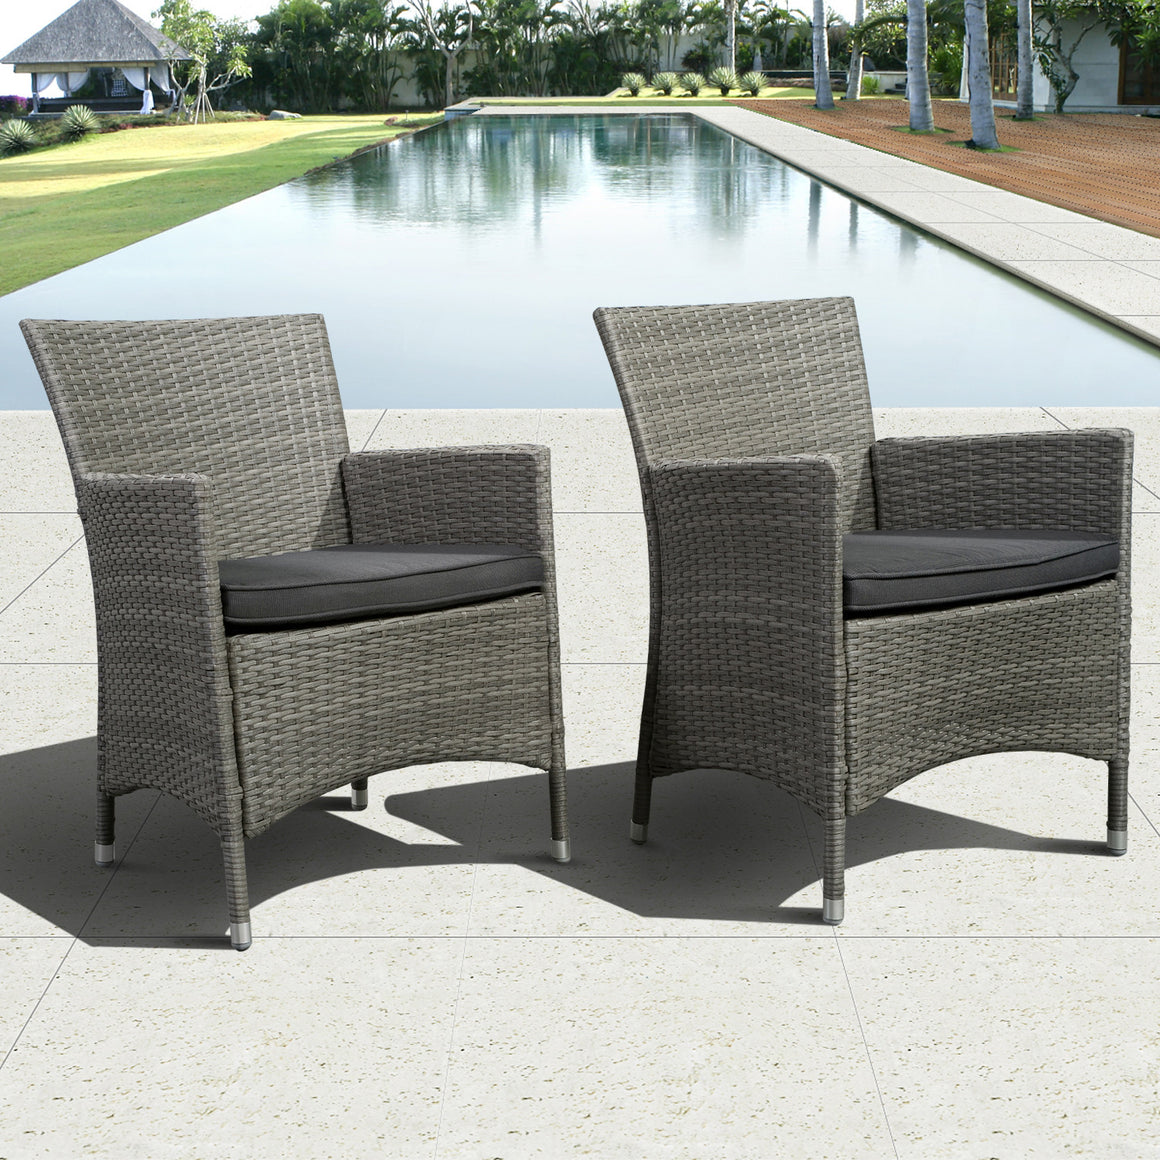 Norris 7 Piece Teak/Wicker Rectangular Dining Set with Grey Cushions , International Home Miami- grayburd